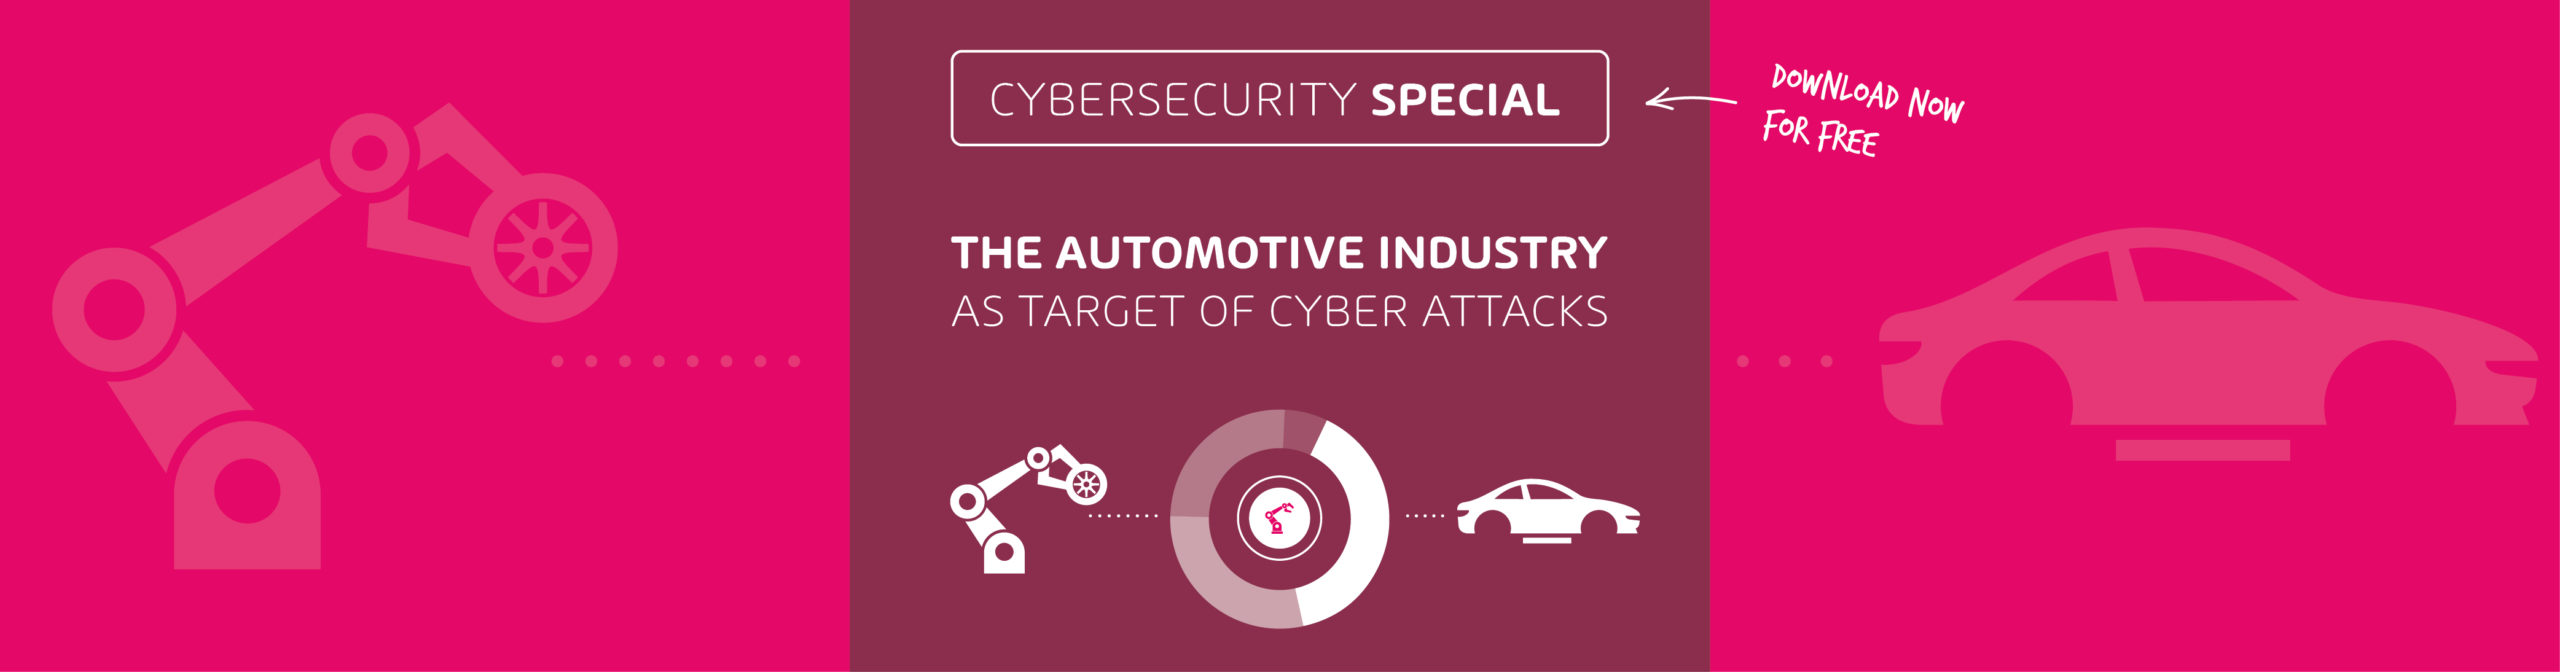 Cybersecurity Special the automotive industry as a target of cyberattacks